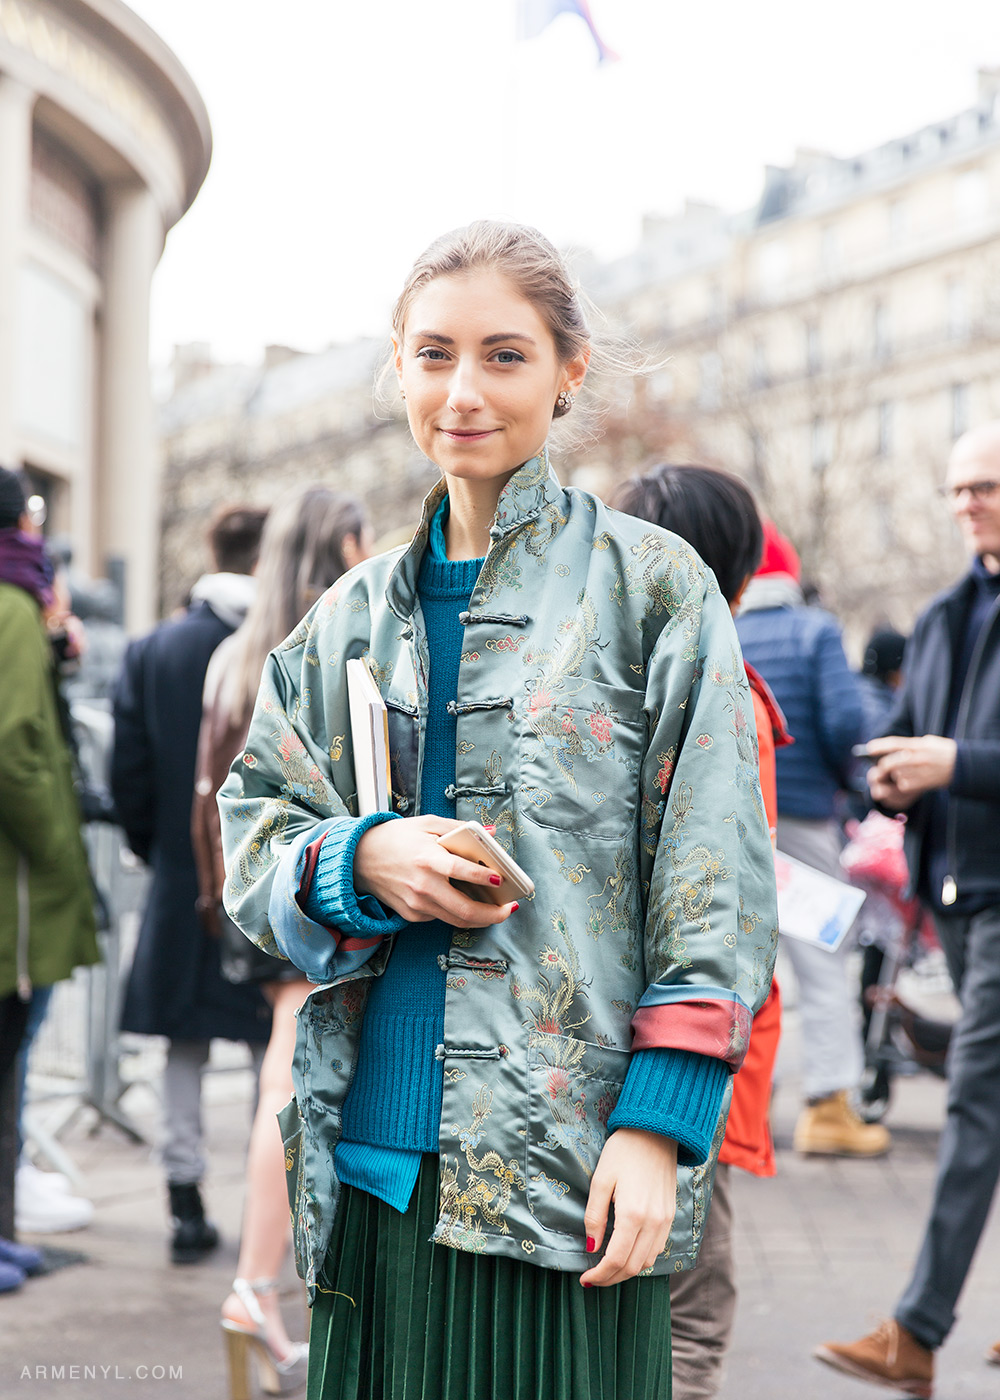 Fashion Illustrator Jenny Walton Street style outside Miu Miu AW 16 show in Paris on March 9 2016 photographed by Armenyl.com